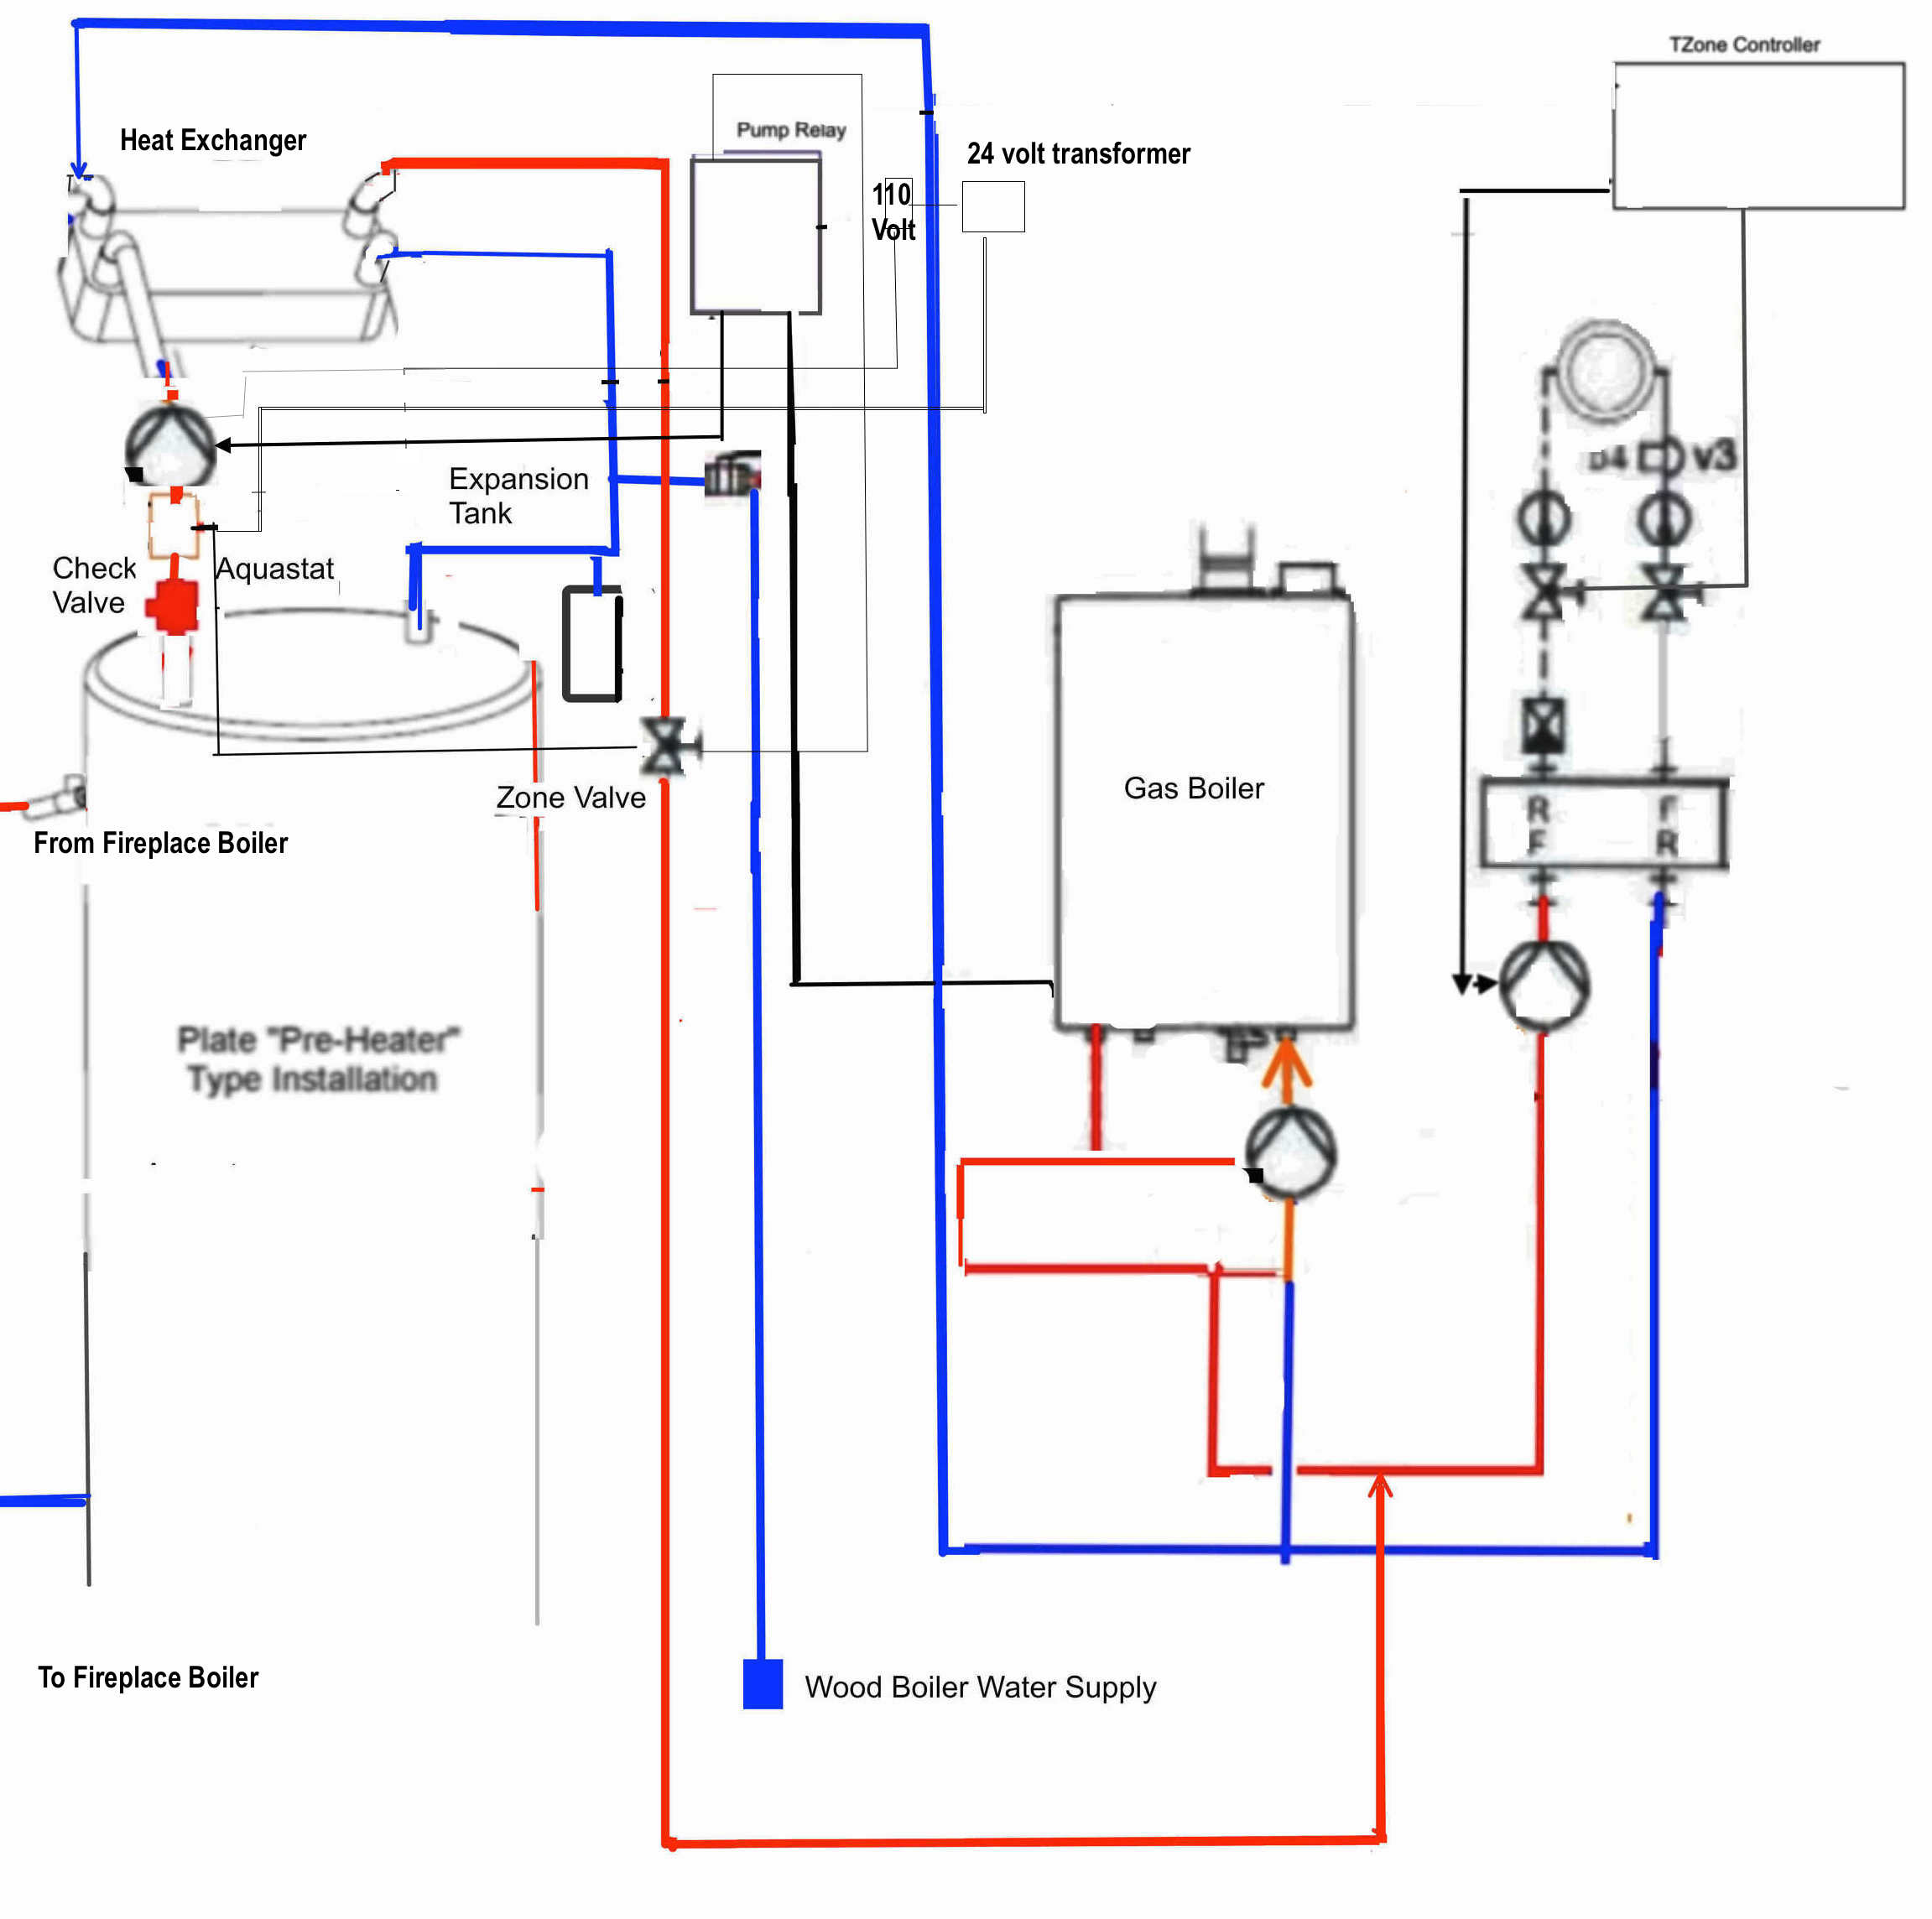 wiring plan for fireplace boiler twinsprings research